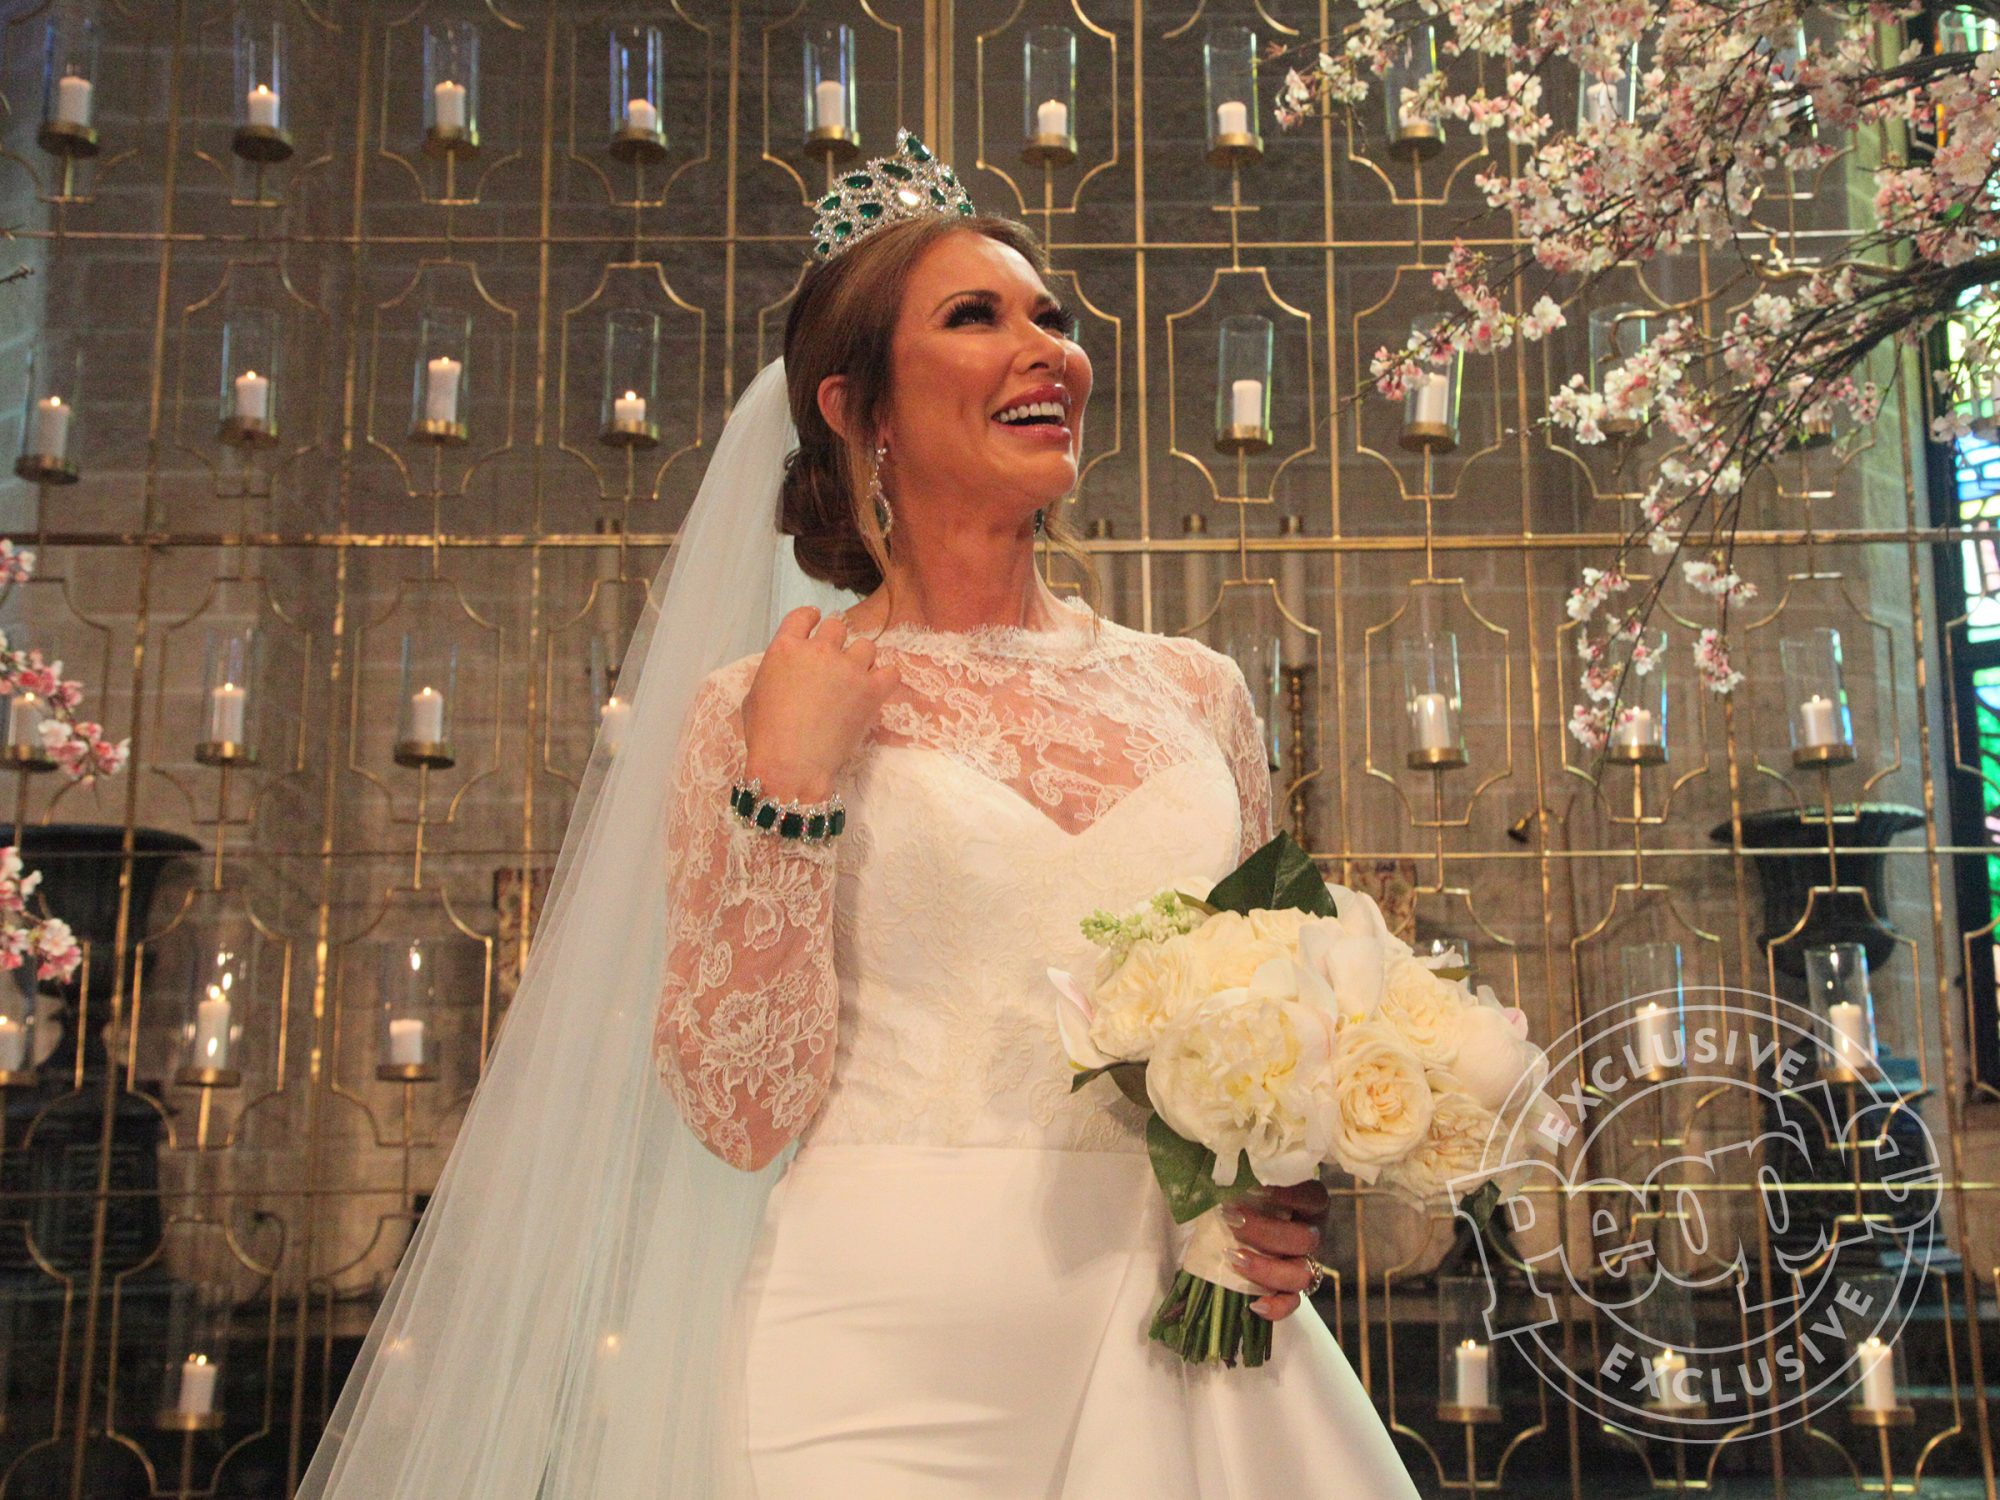 WATERMARKED: LeeAnne Locken wedding